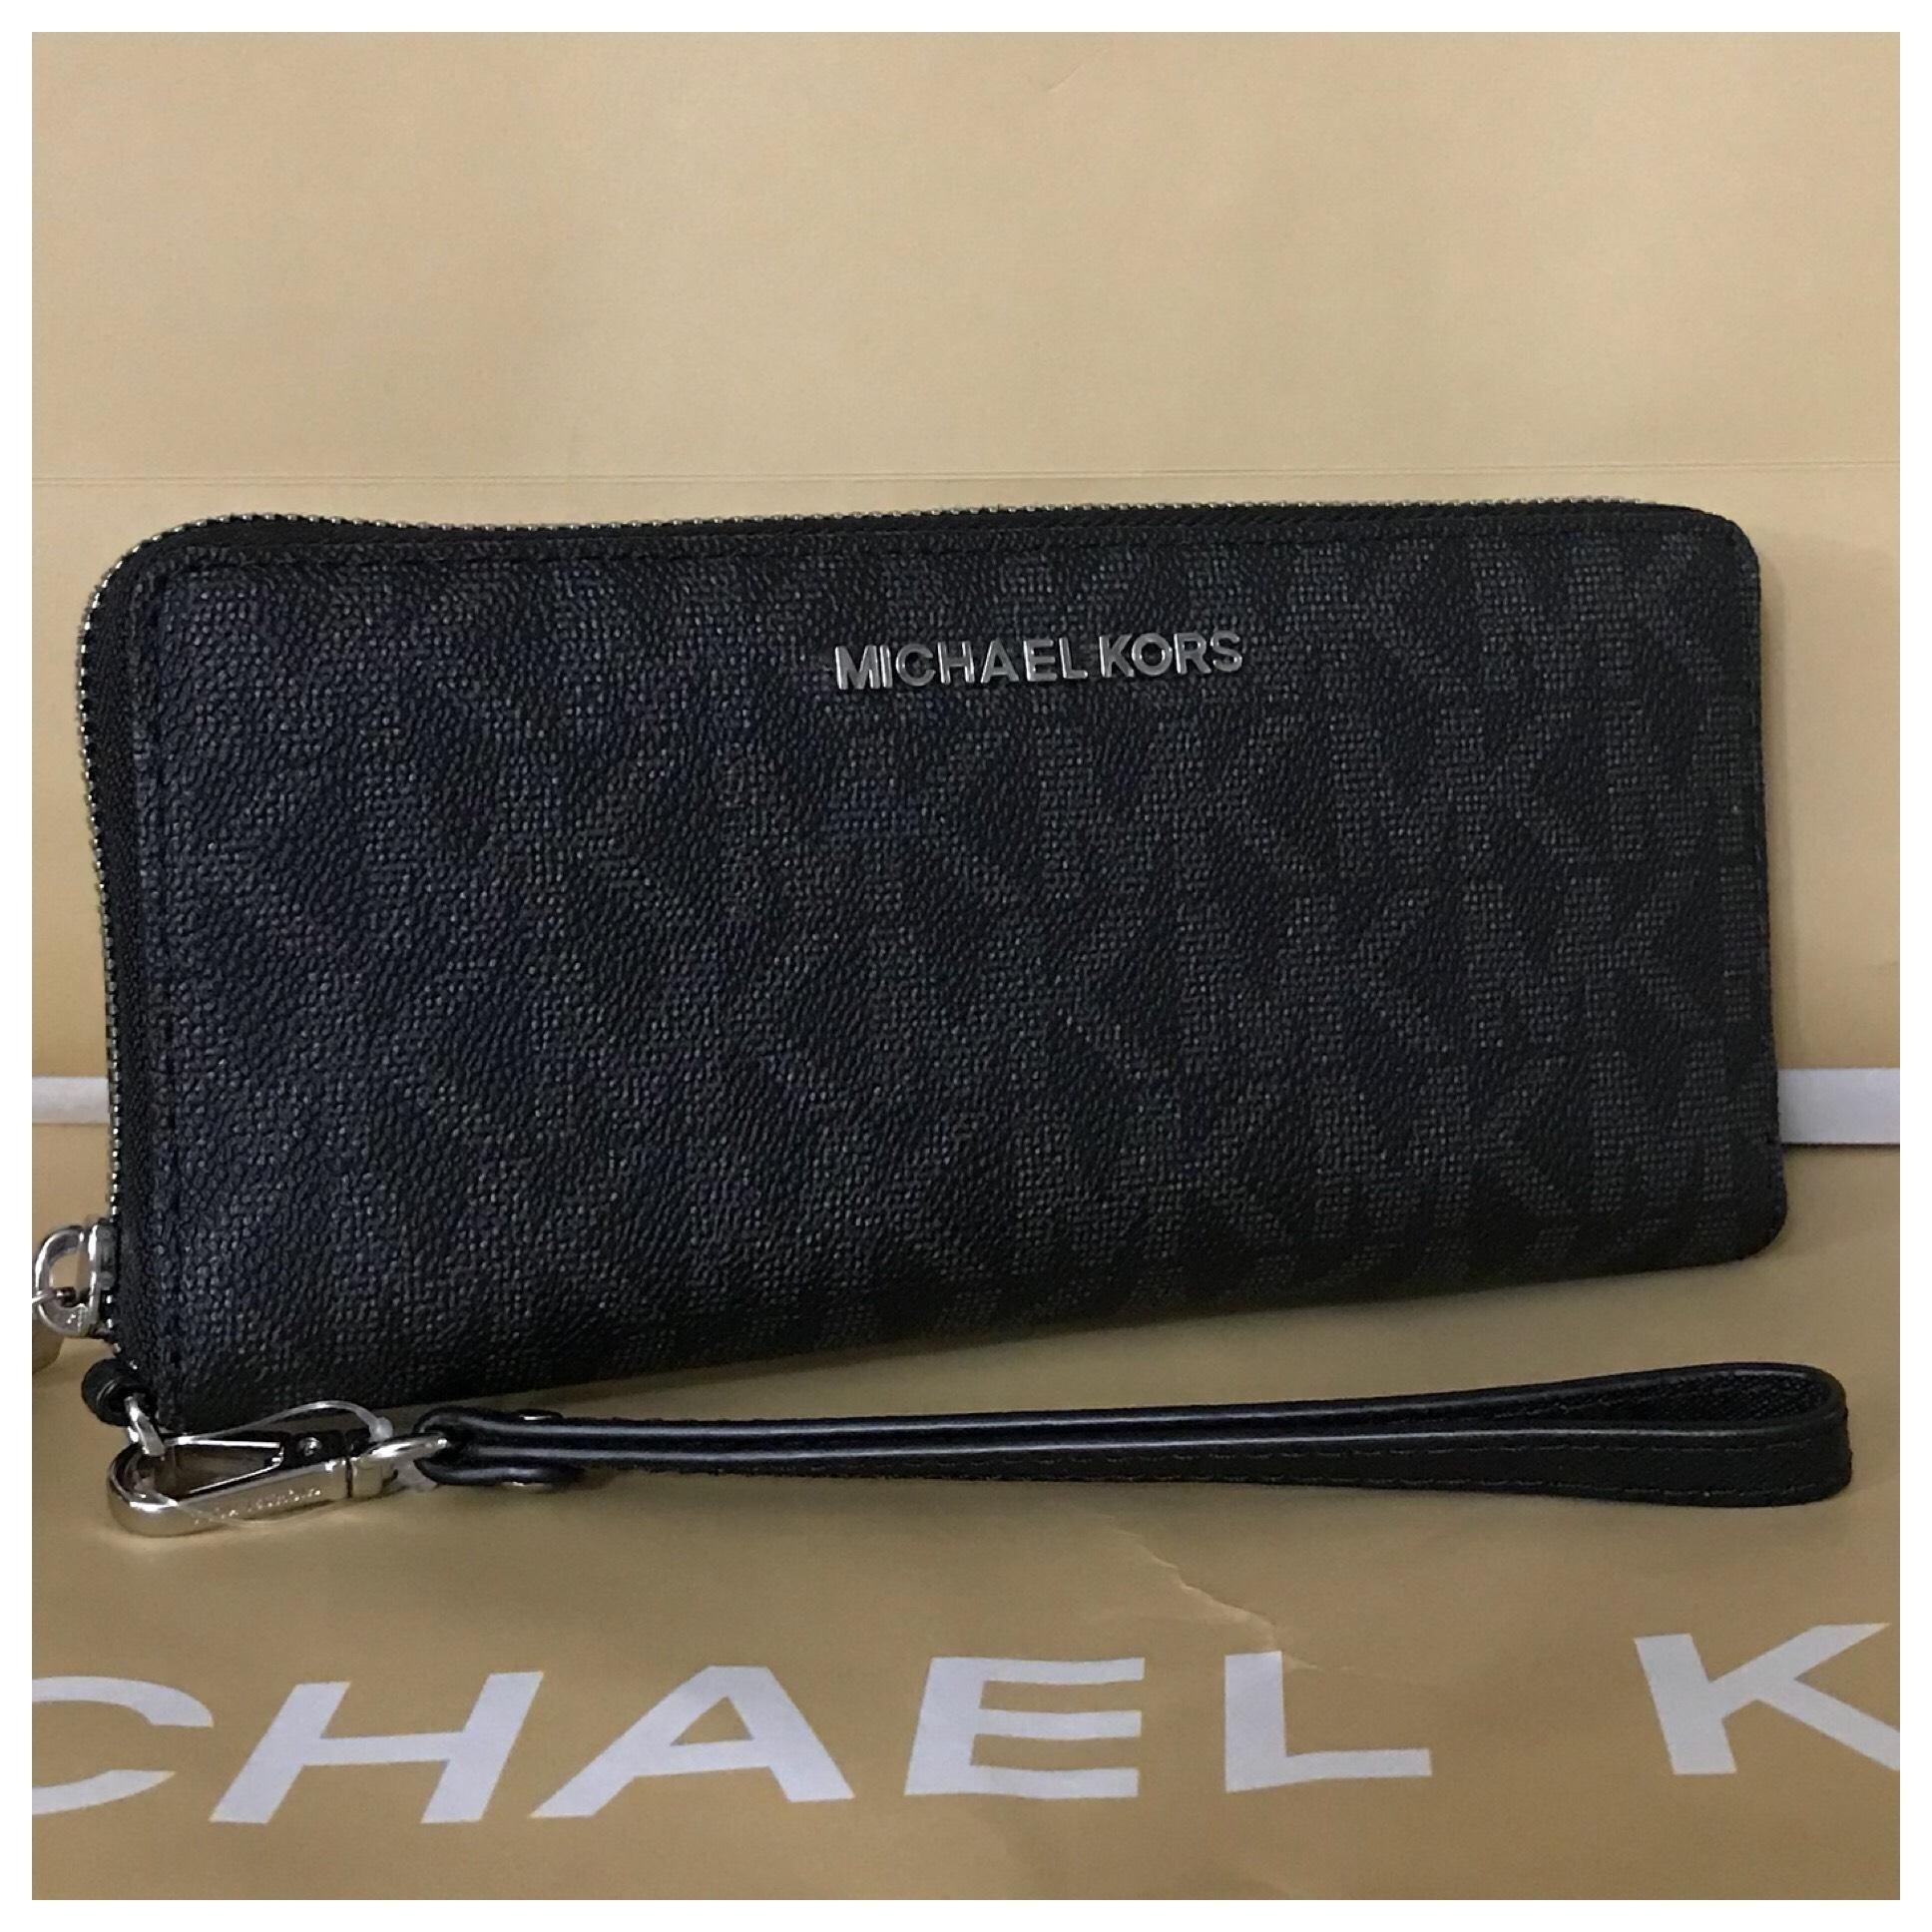 aee6e06de817 ... sale free shipping today overstock 11099427 50aad 77f95; spain michael  kors nwt mk jet set travel continental wallet 474f3 6fdc4